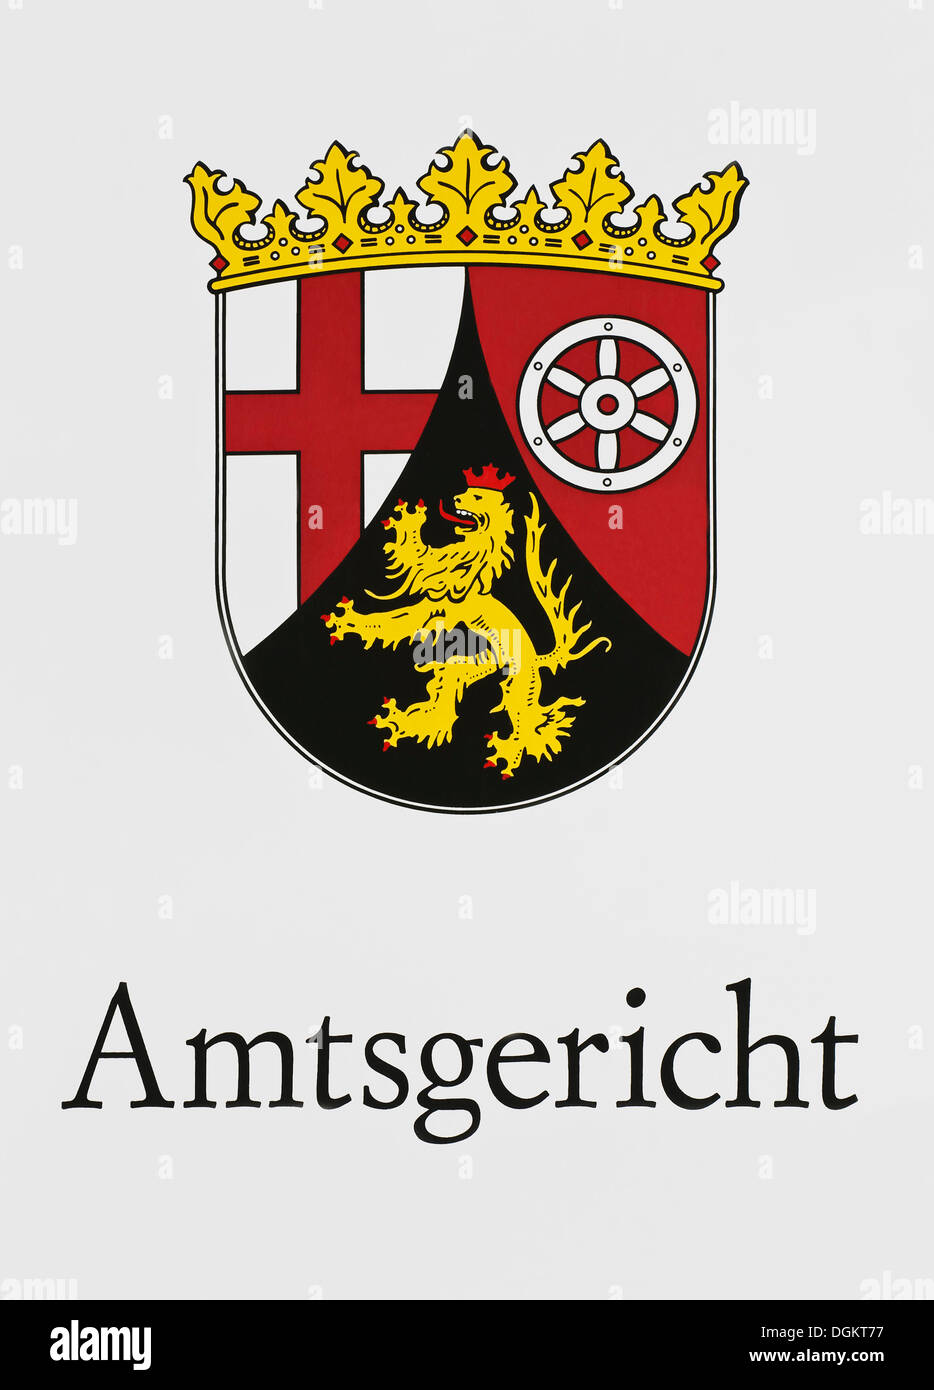 Sign, Amtsgericht, German for District Court with the coat of arms of Rhineland-Palatinate - Stock Image